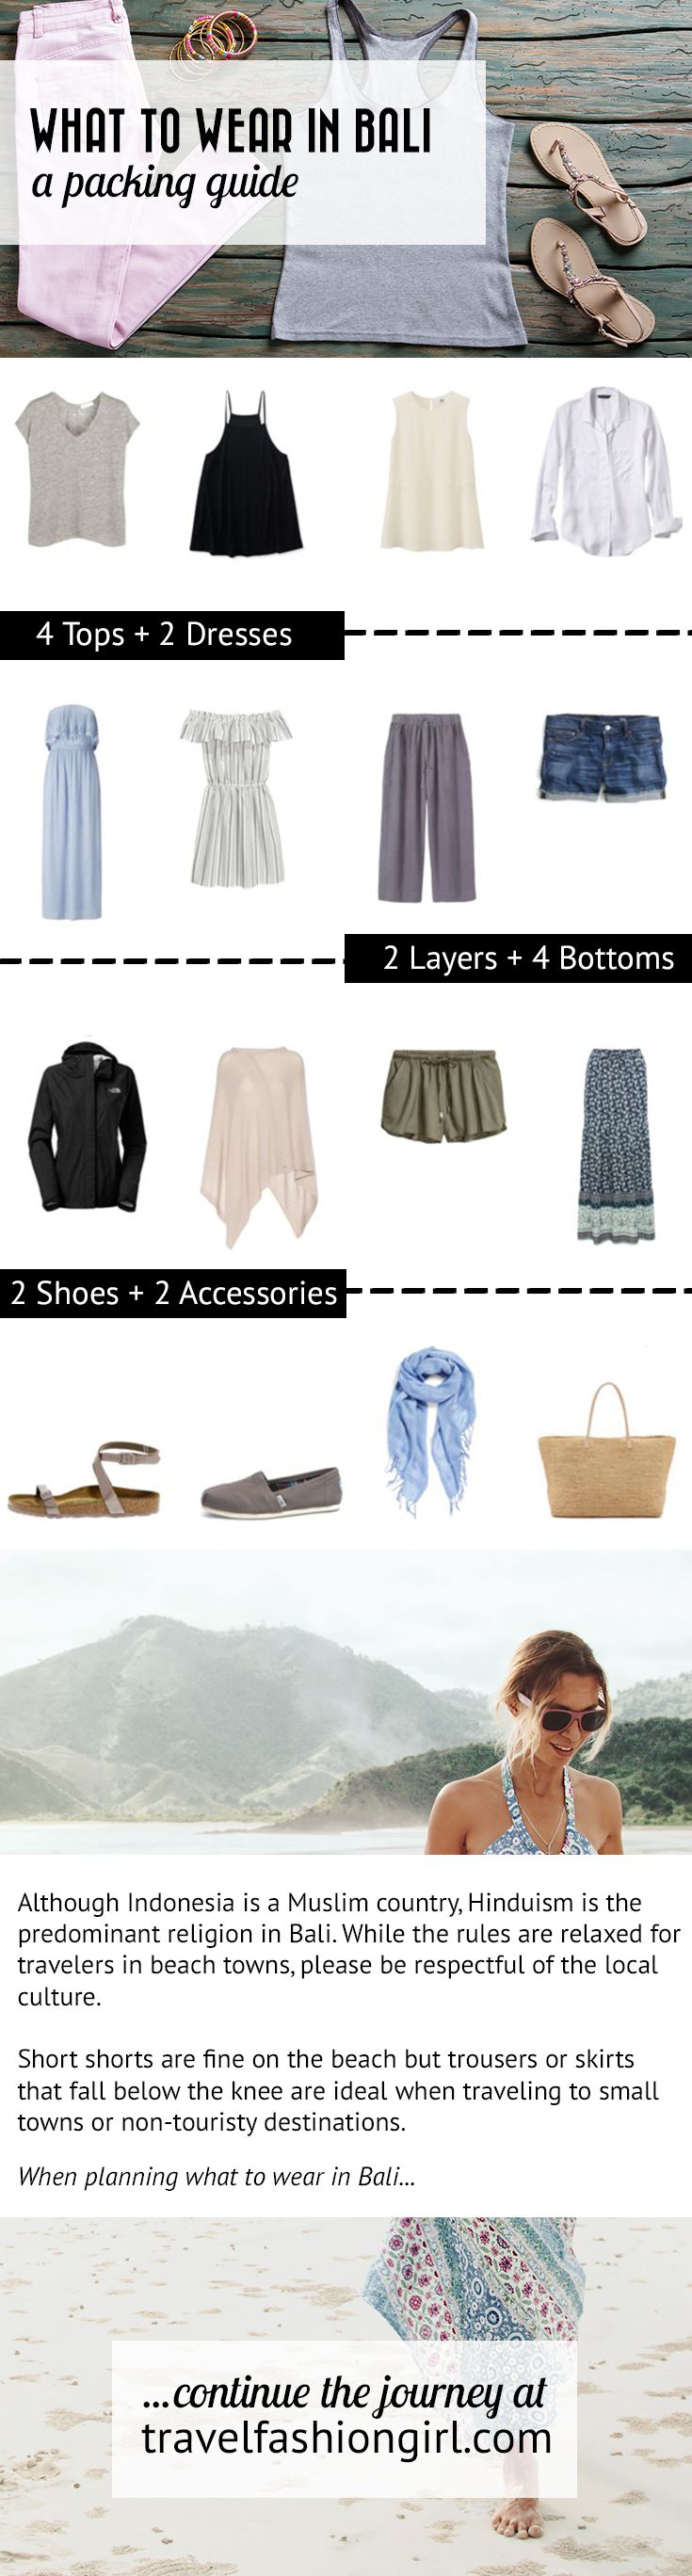 What to Wear in Bali: Packing List and Travel Tips